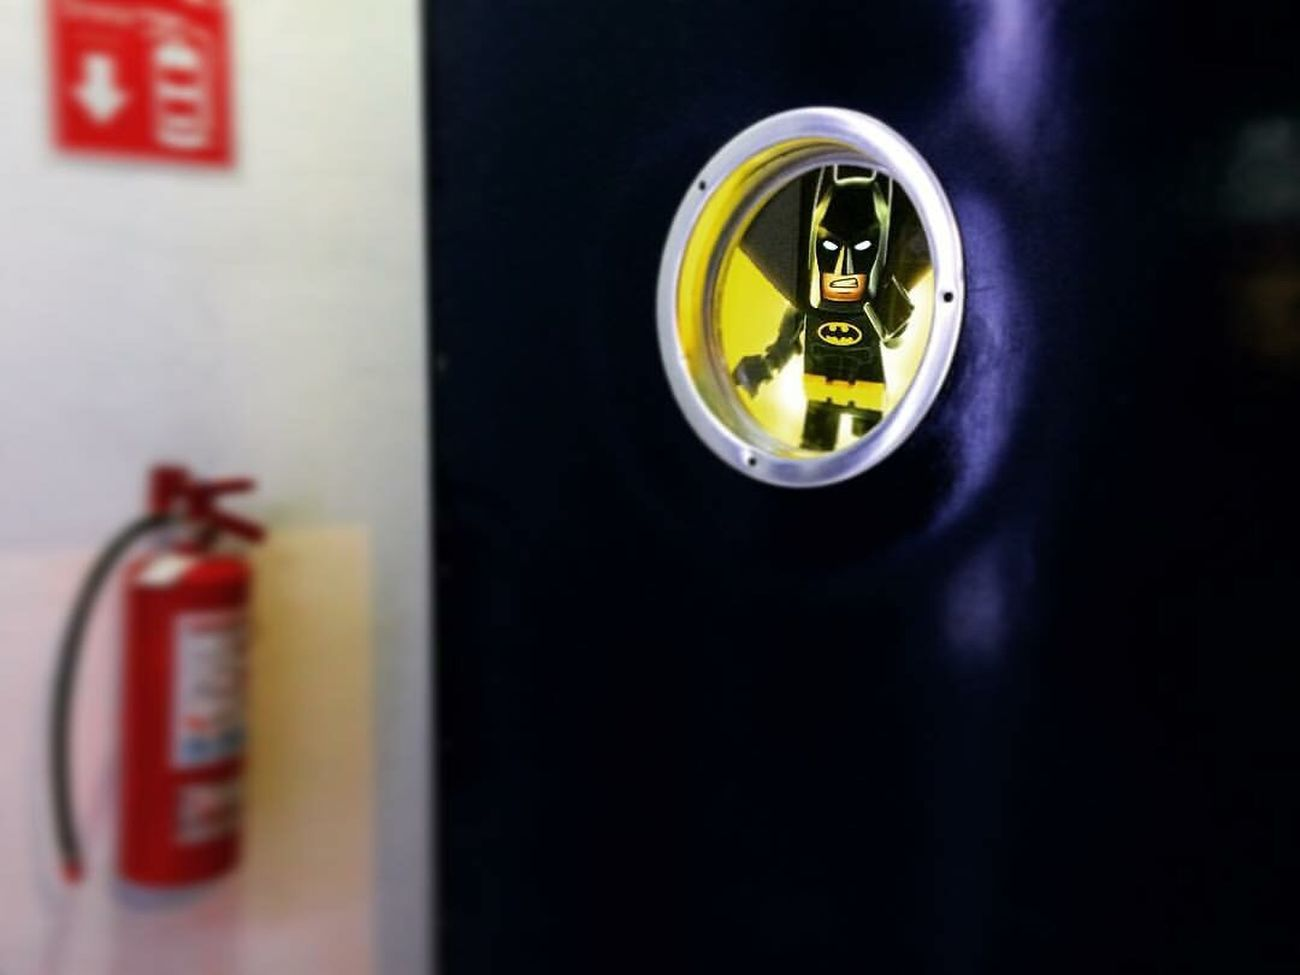 Fire Fighters No People Indoors  Firemen Extinguisher Batsignal Batman LEGO LegoBatman Movietheater